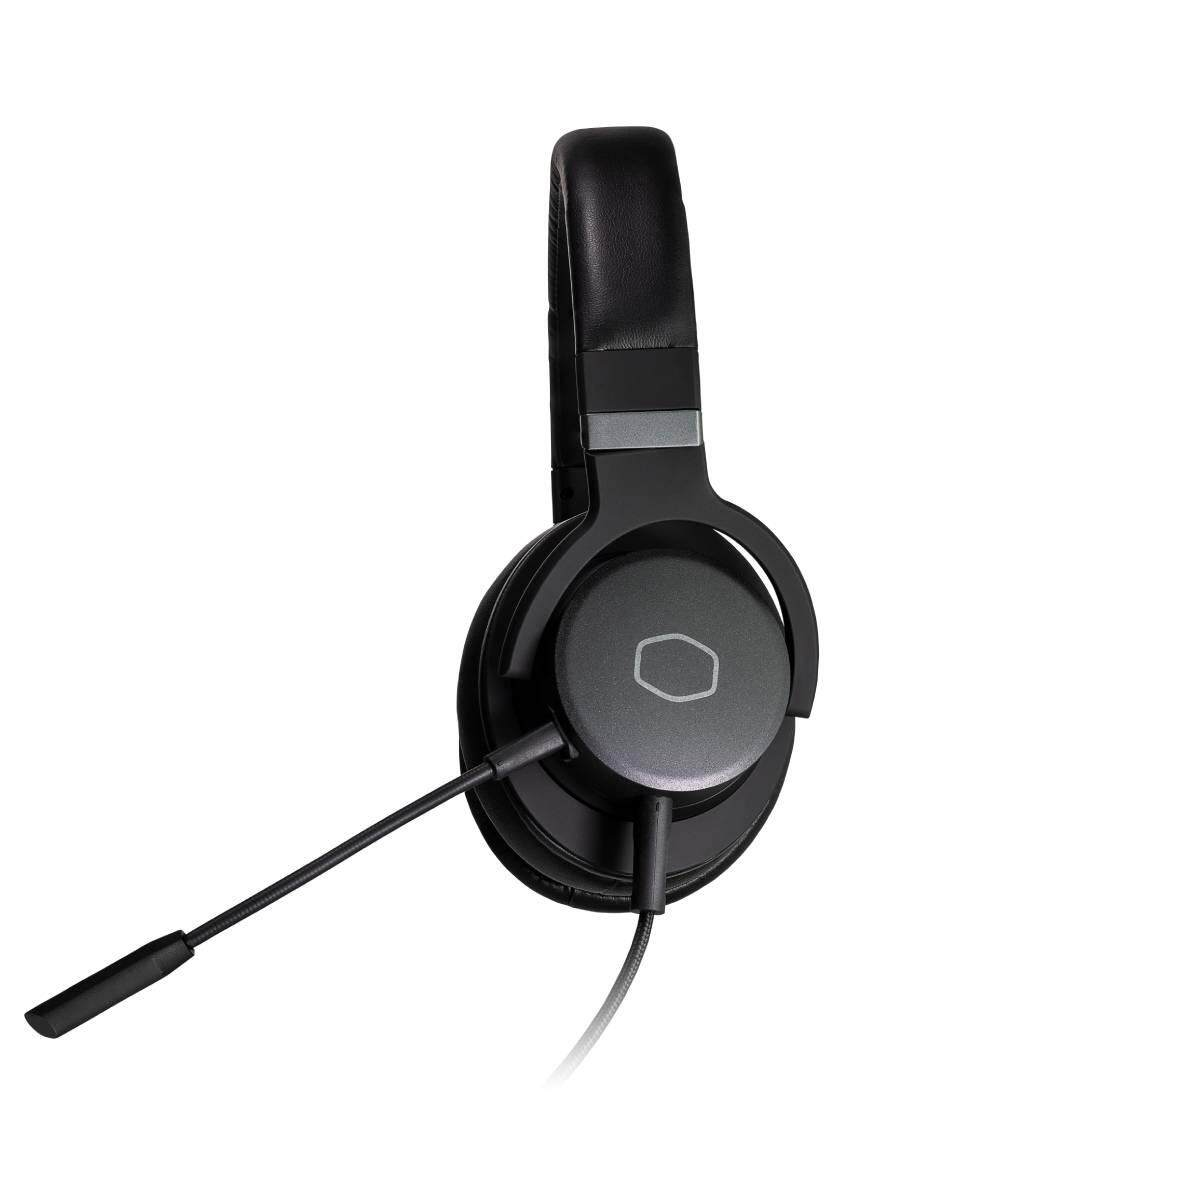 Cooler Master Headset MH751 with In-Line Control, 3.5mm Audio Jack, Detachable Boom Mic, 40mm Driver